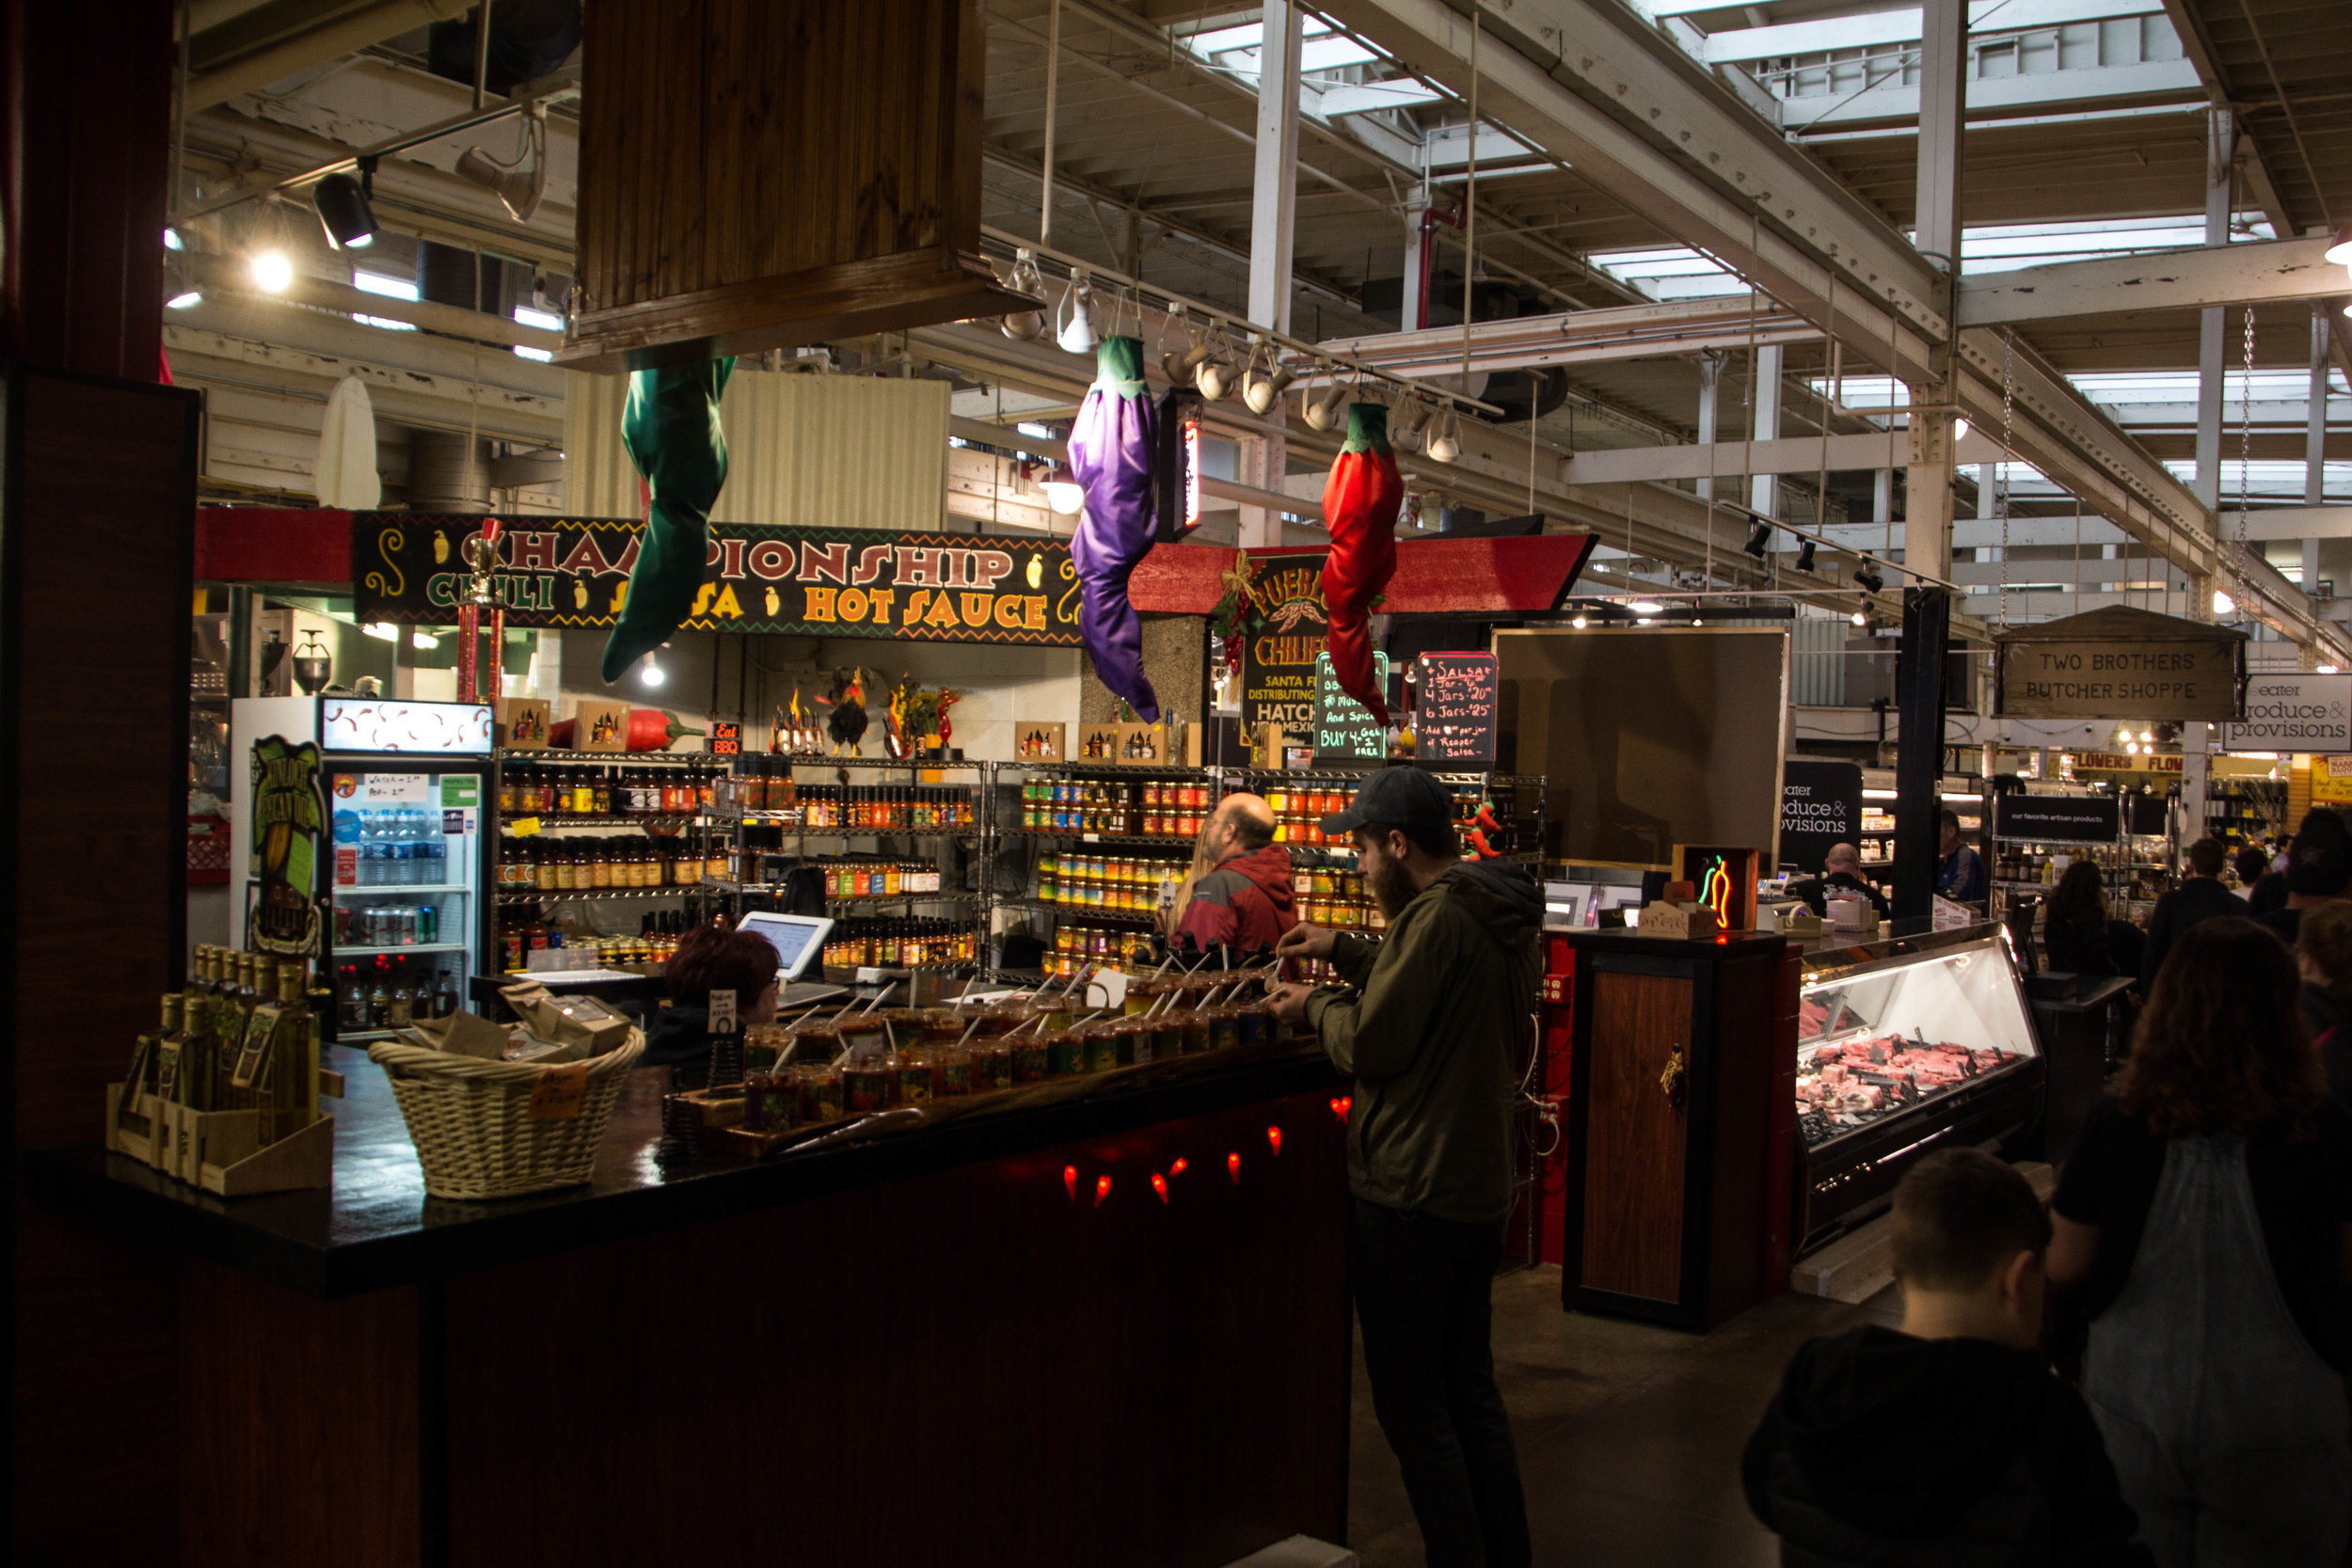 north market columbus ohio-4.jpg